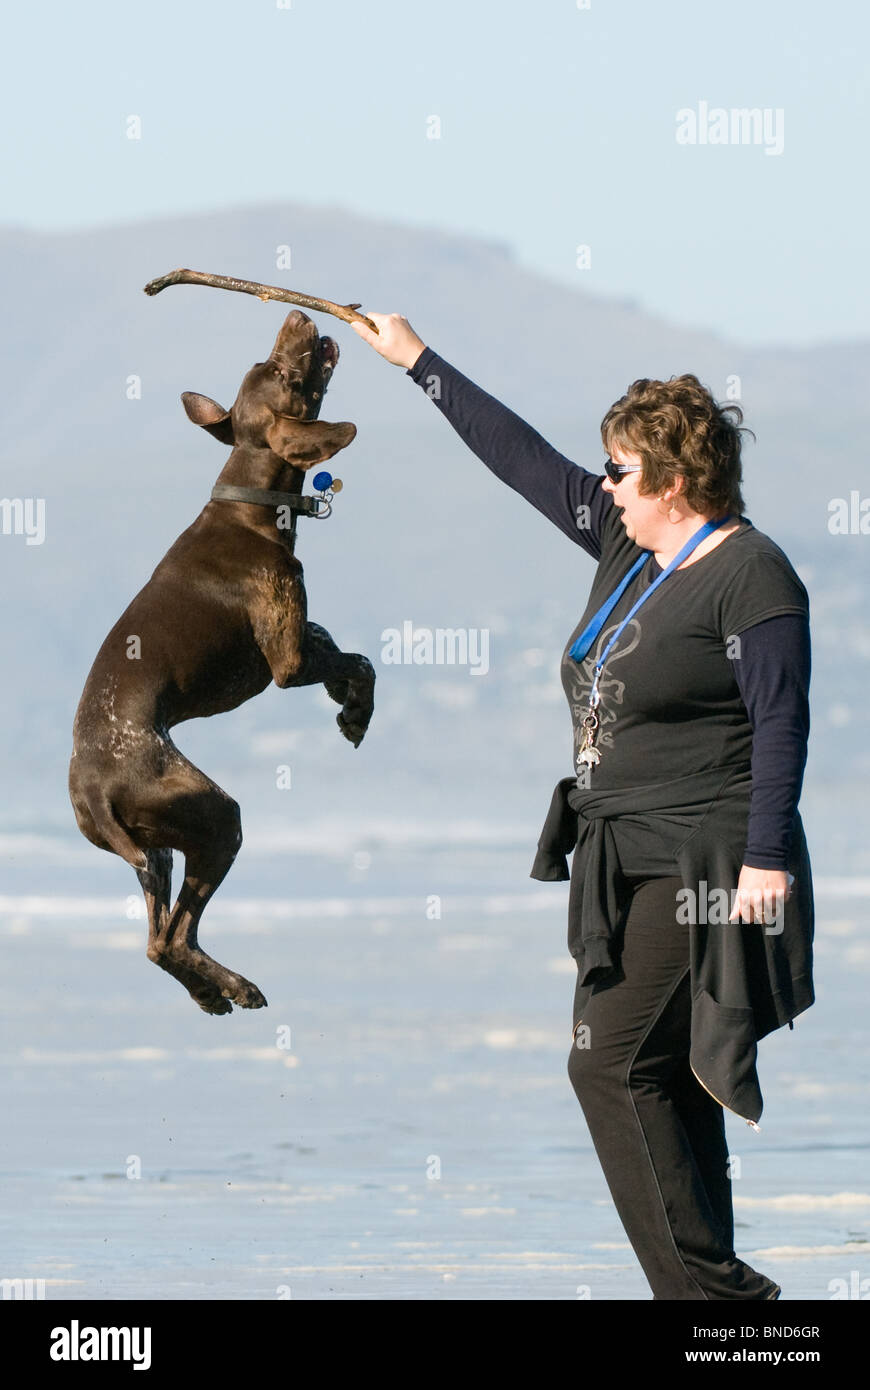 German short haired pointer Canis lupus familiaris jumping - Stock Image